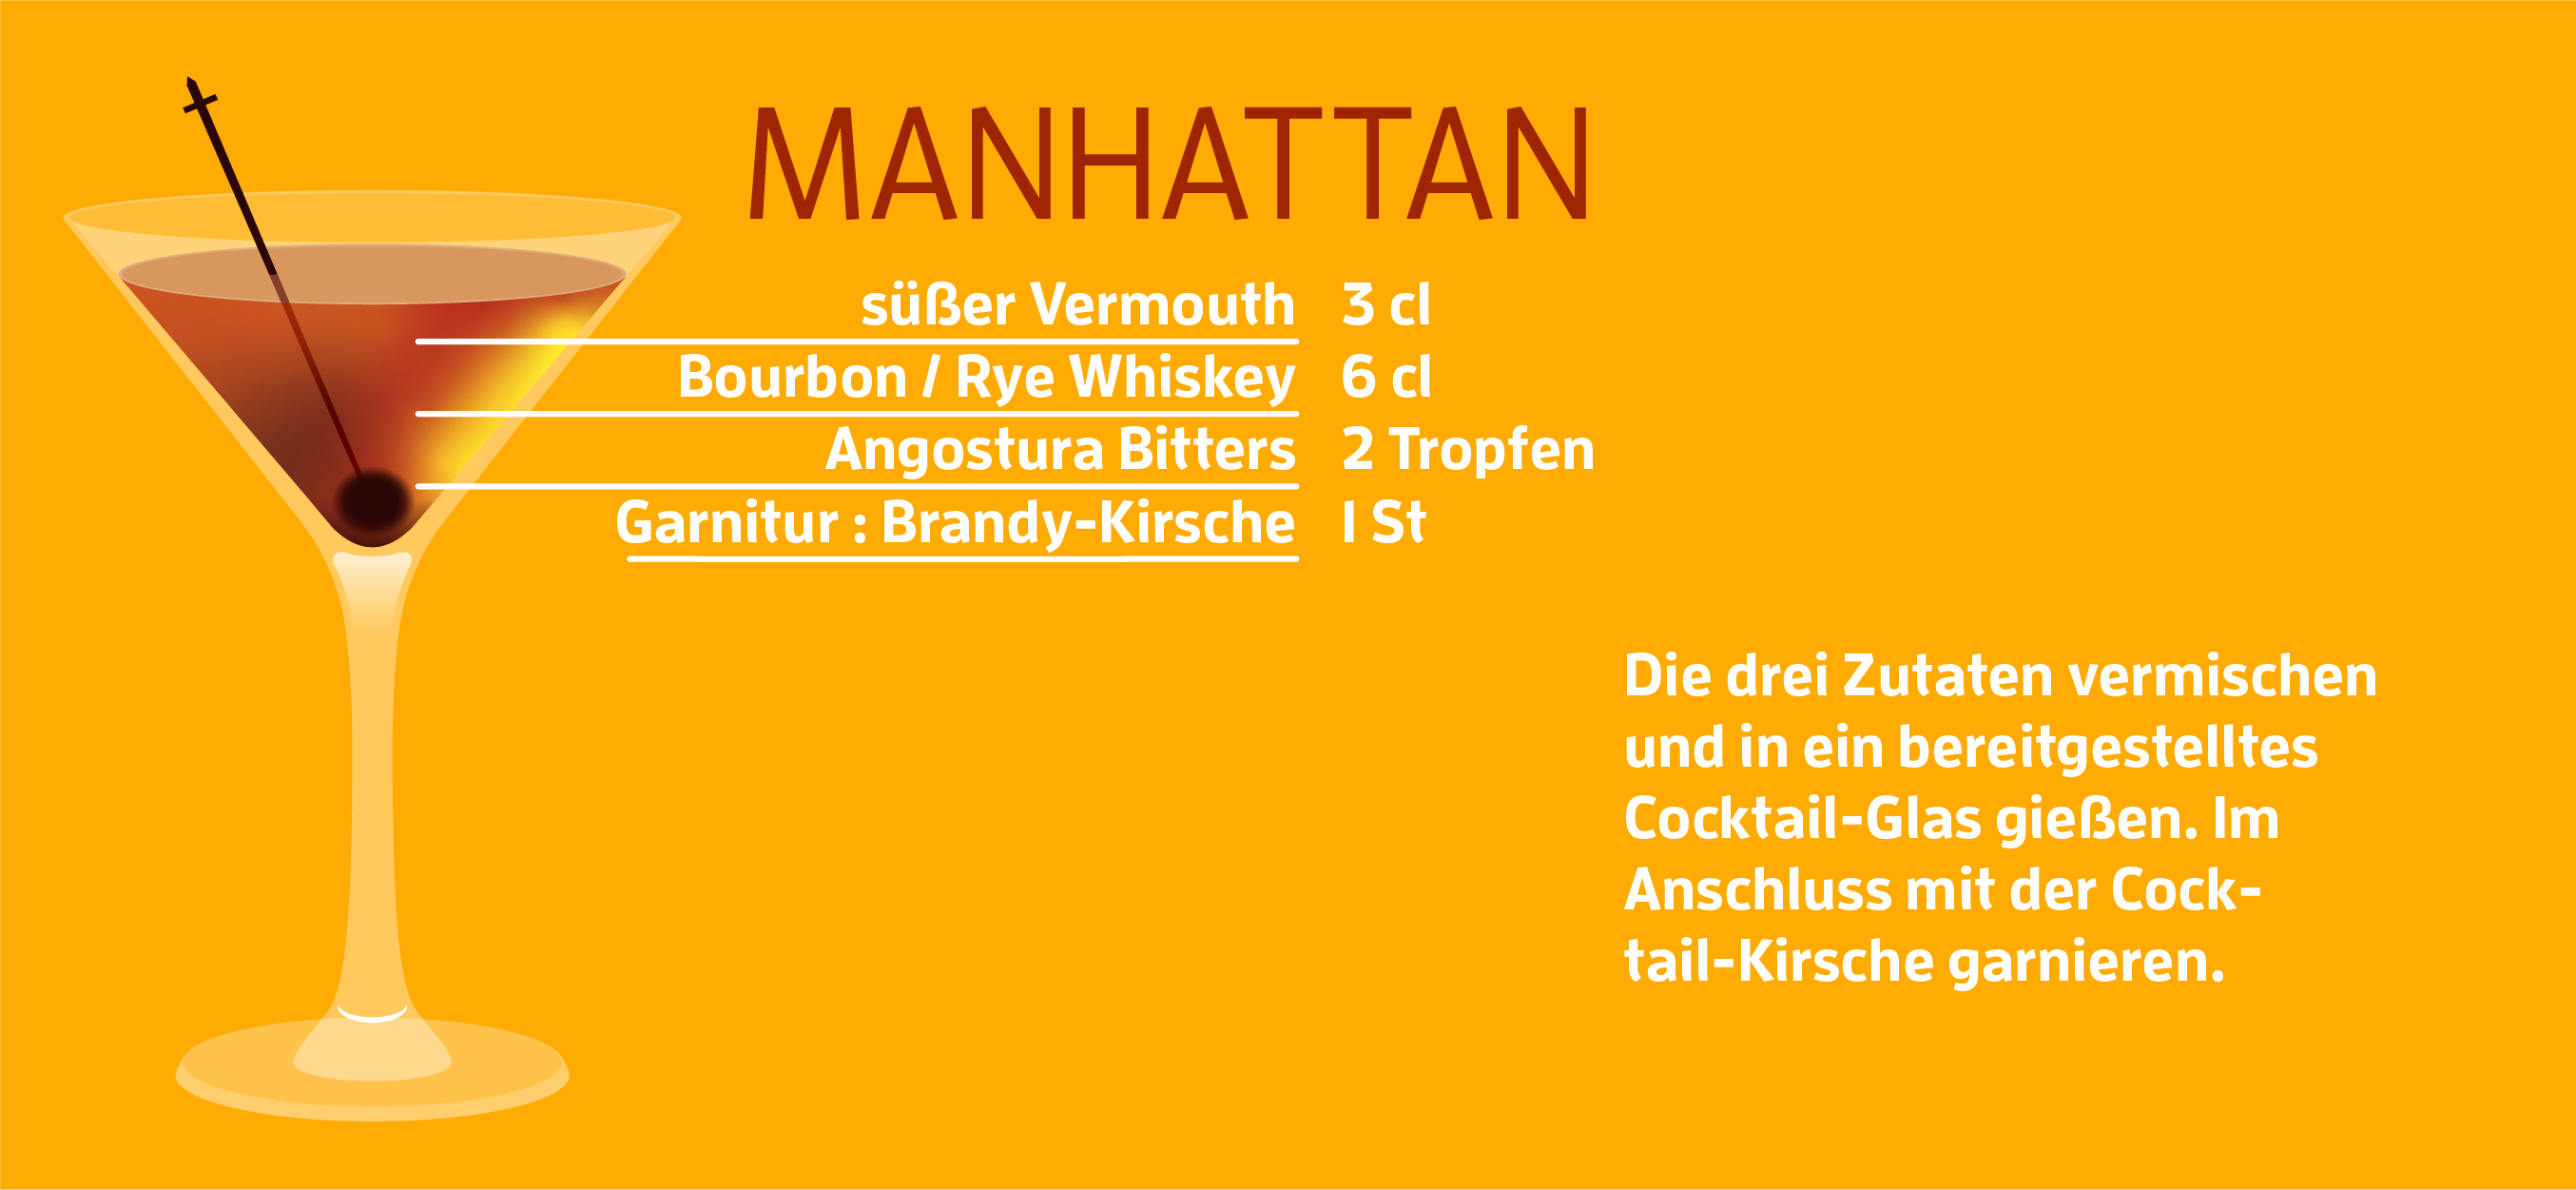 Cocktails Platz 3 Manhattan Rezept